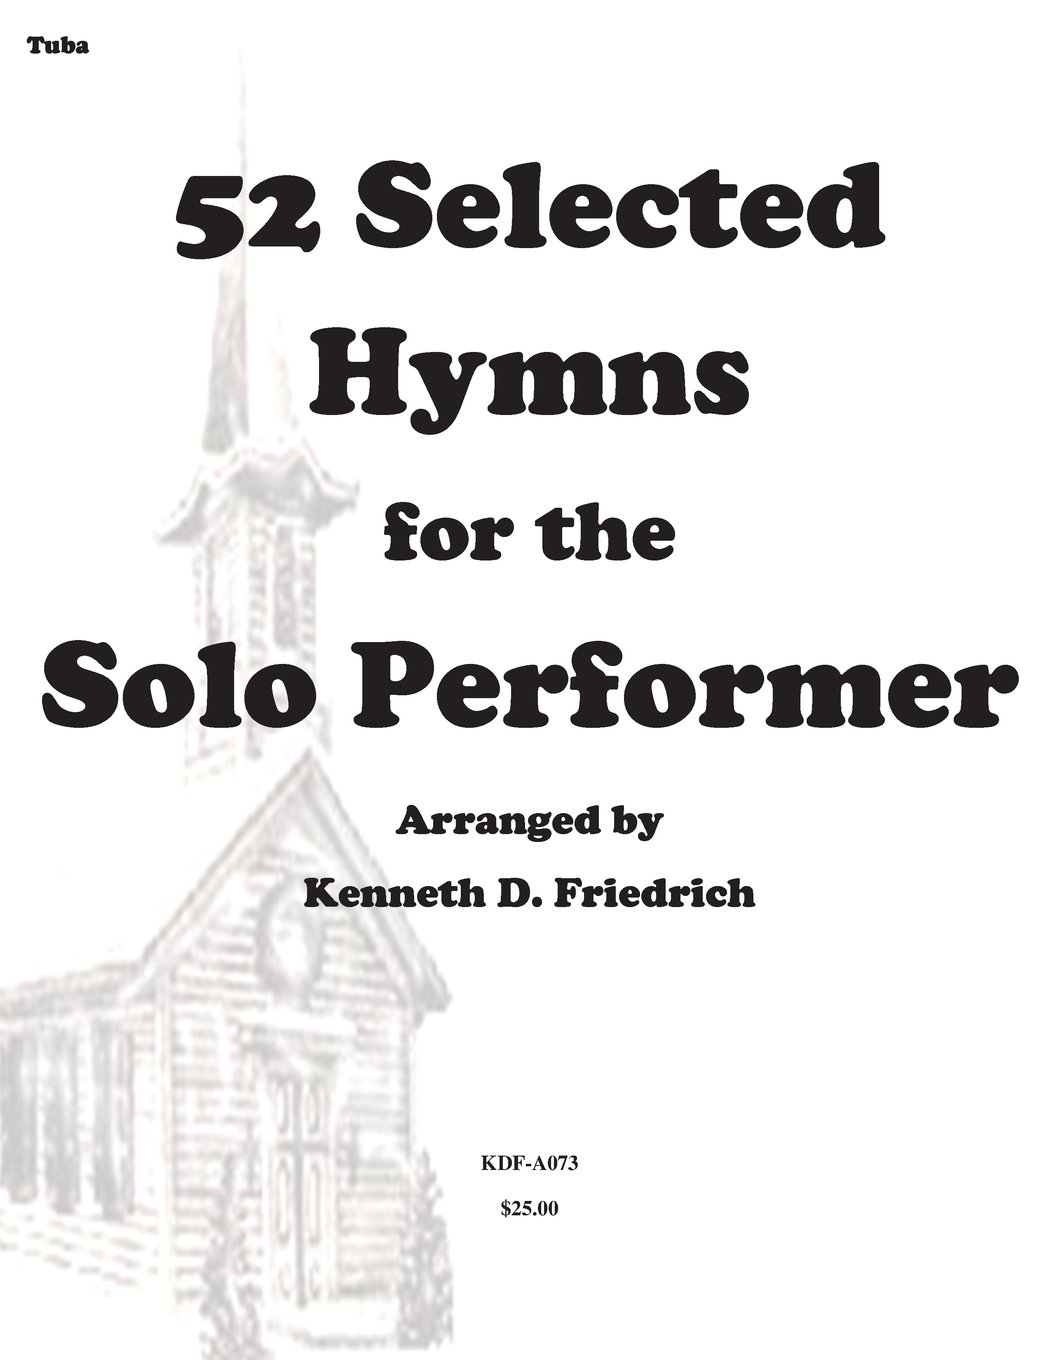 Download 52 Selected Hymns for the Solo Performer-tuba version PDF